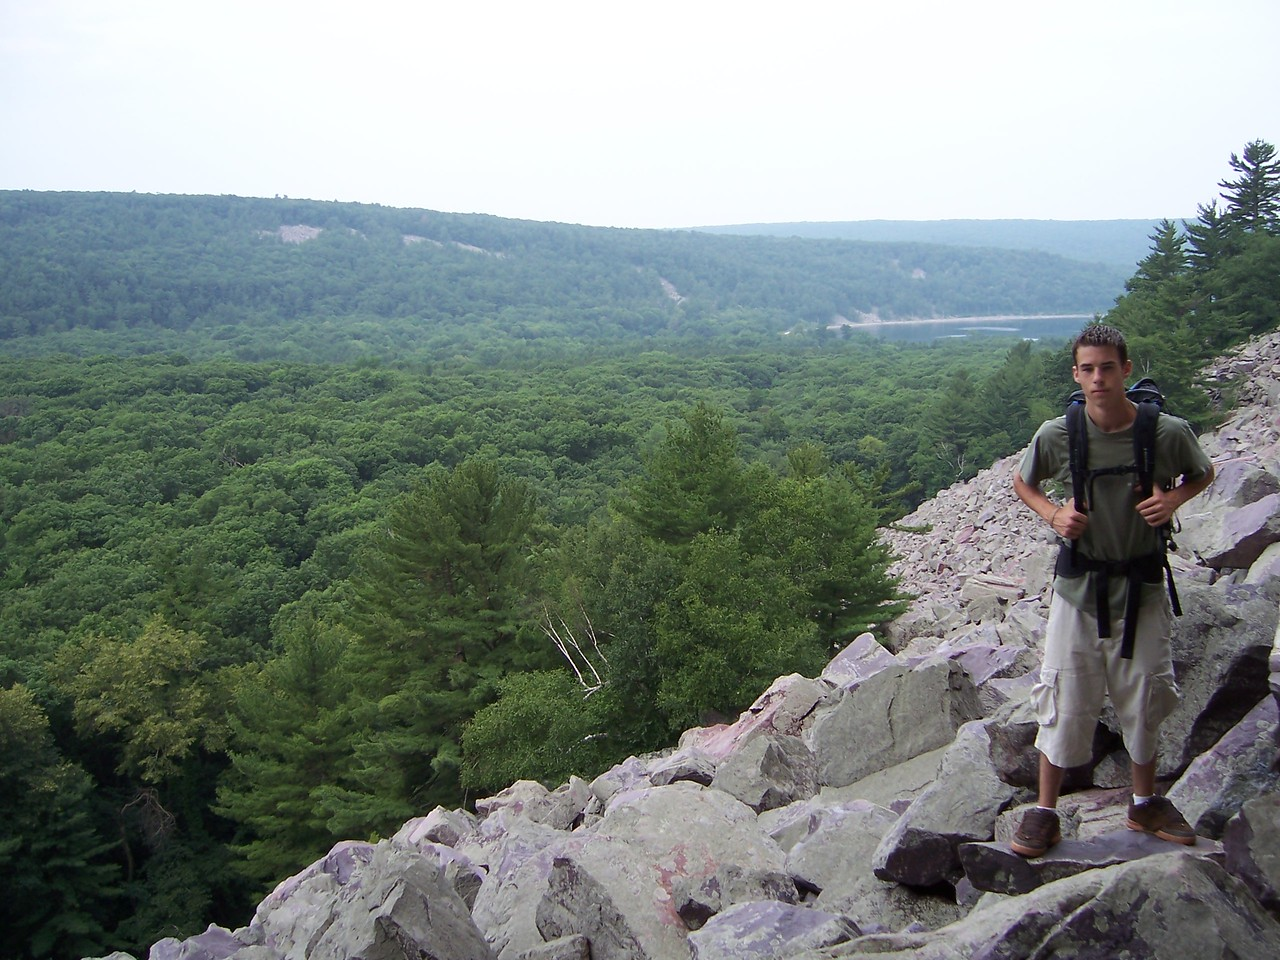 me & Dan head up to sample the climbing at Devils Lake